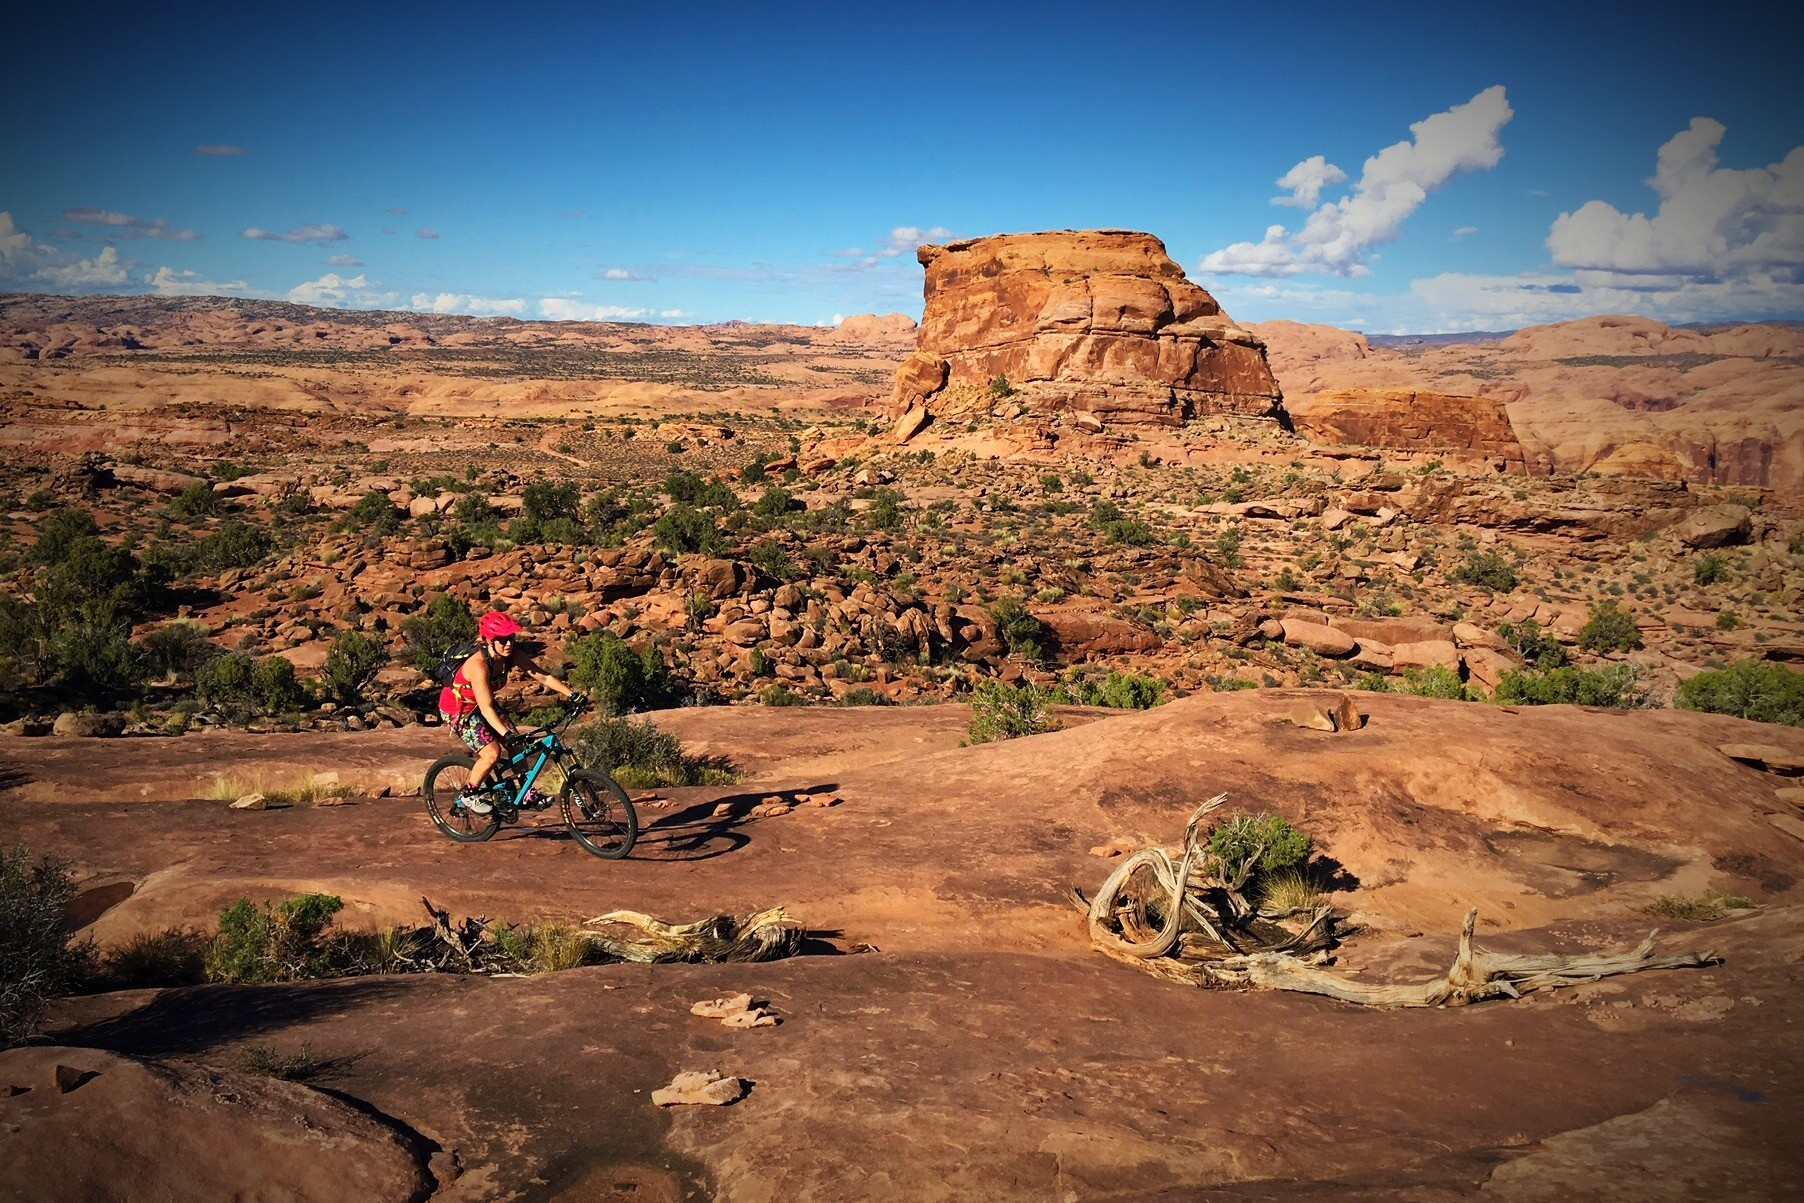 201610 - Hymasa in Moab with Julie.JPG